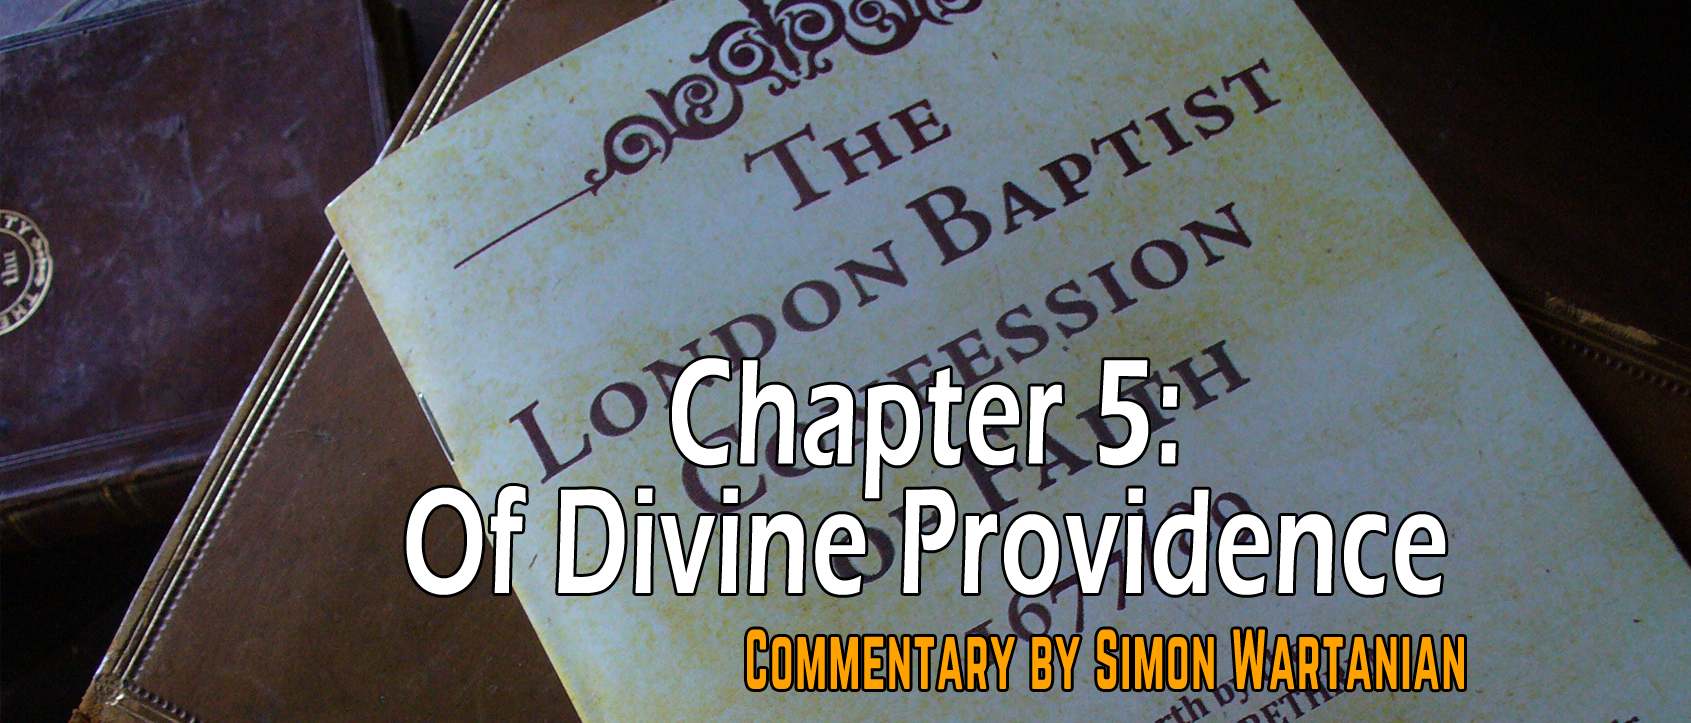 1689 Baptist Confession Chapter 5: Of Divine Providence - Commentary